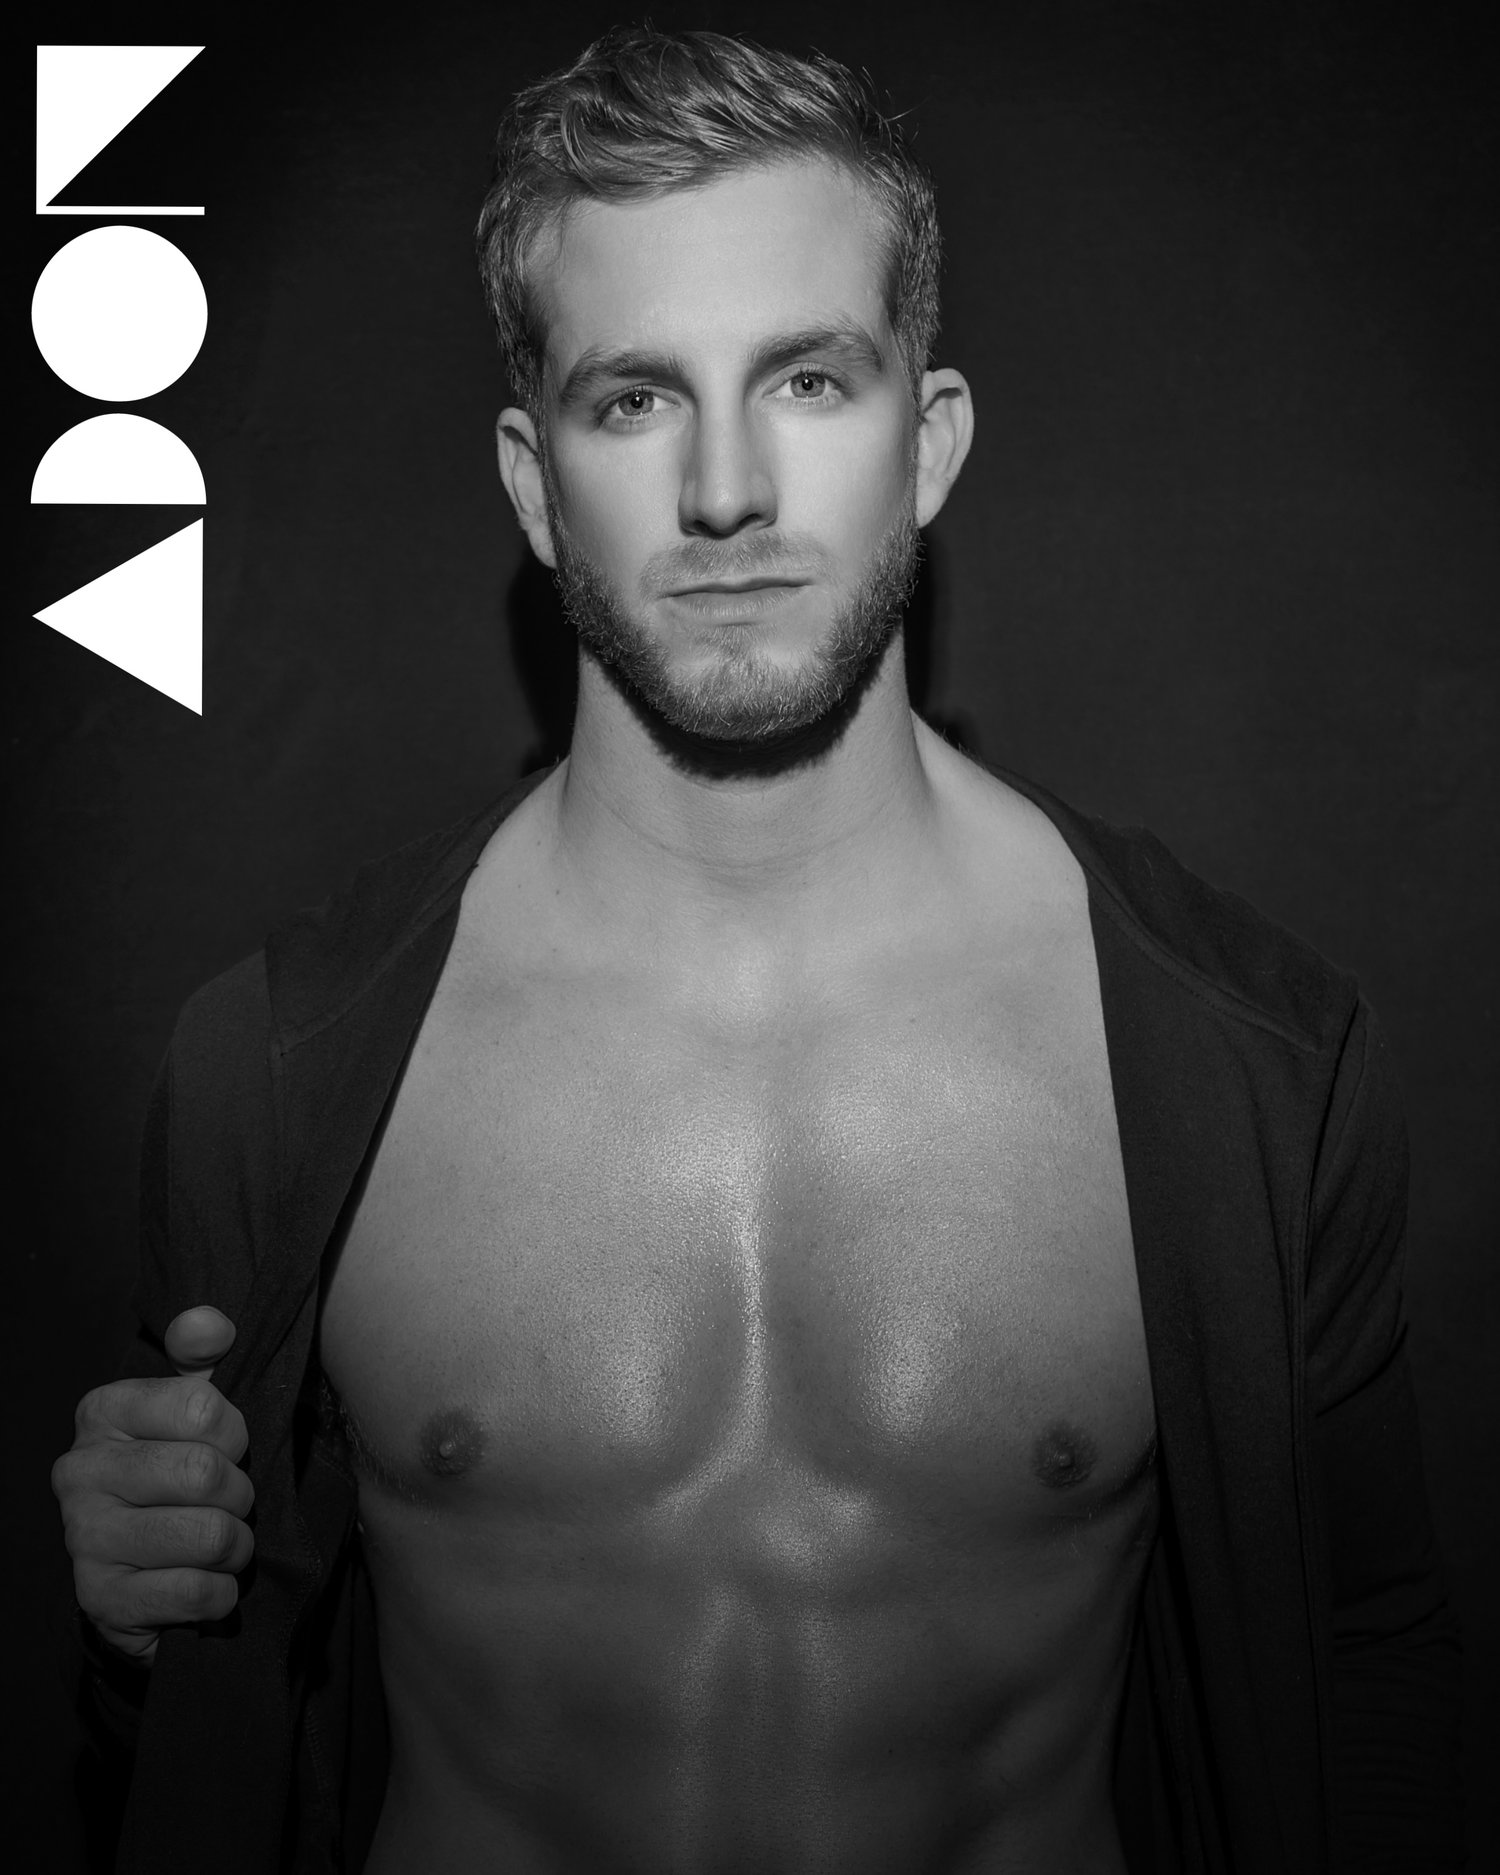 Adon Exclusive: Model Brian Loud By Fazdlee Isa